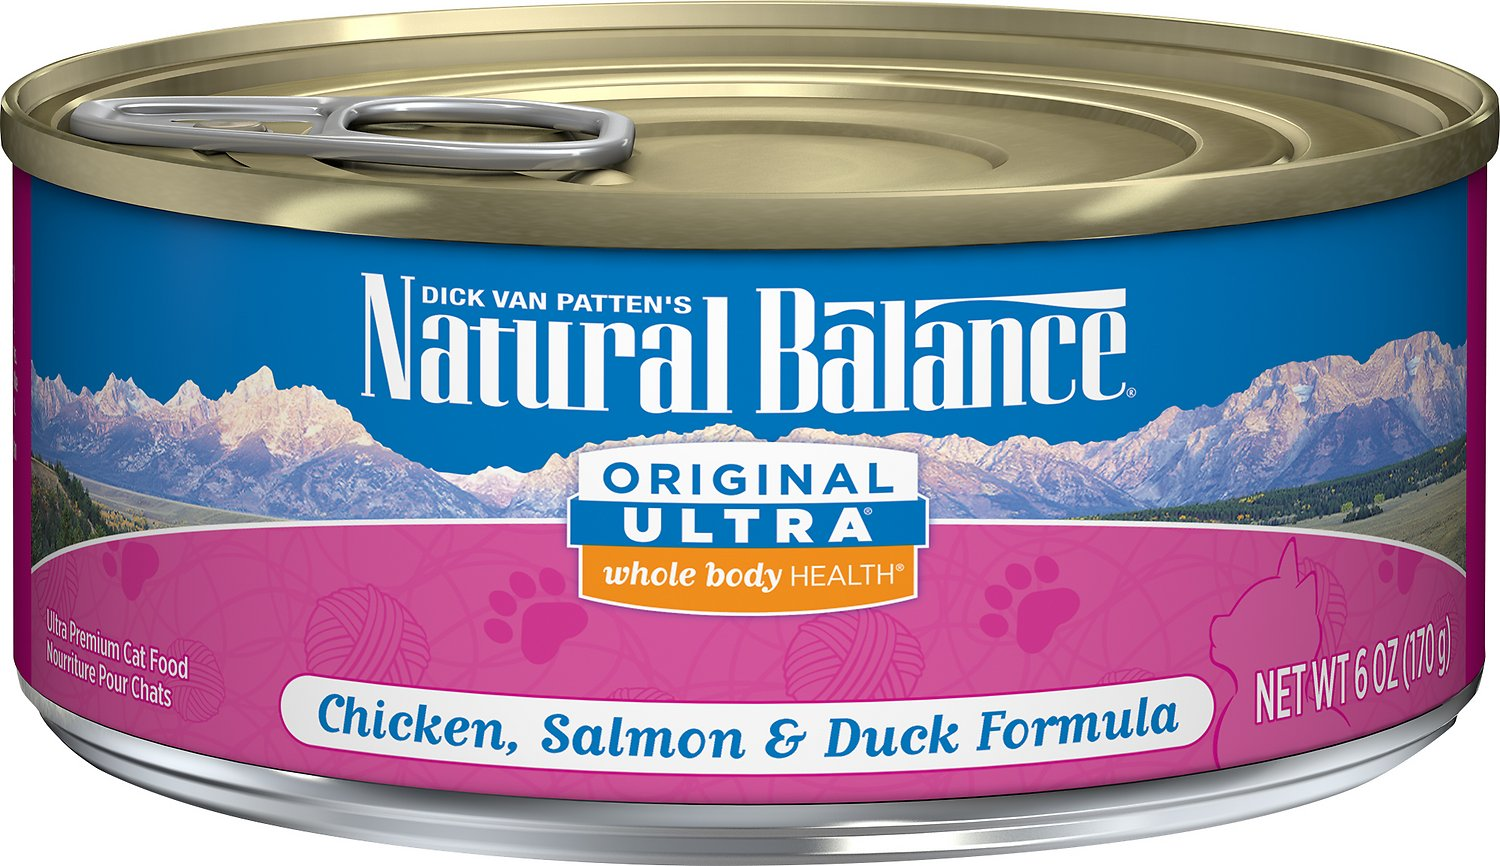 Natural Balance Original Ultra Whole Body Health Chicken, Salmon & Duck Formula Canned Cat Food, 3-oz